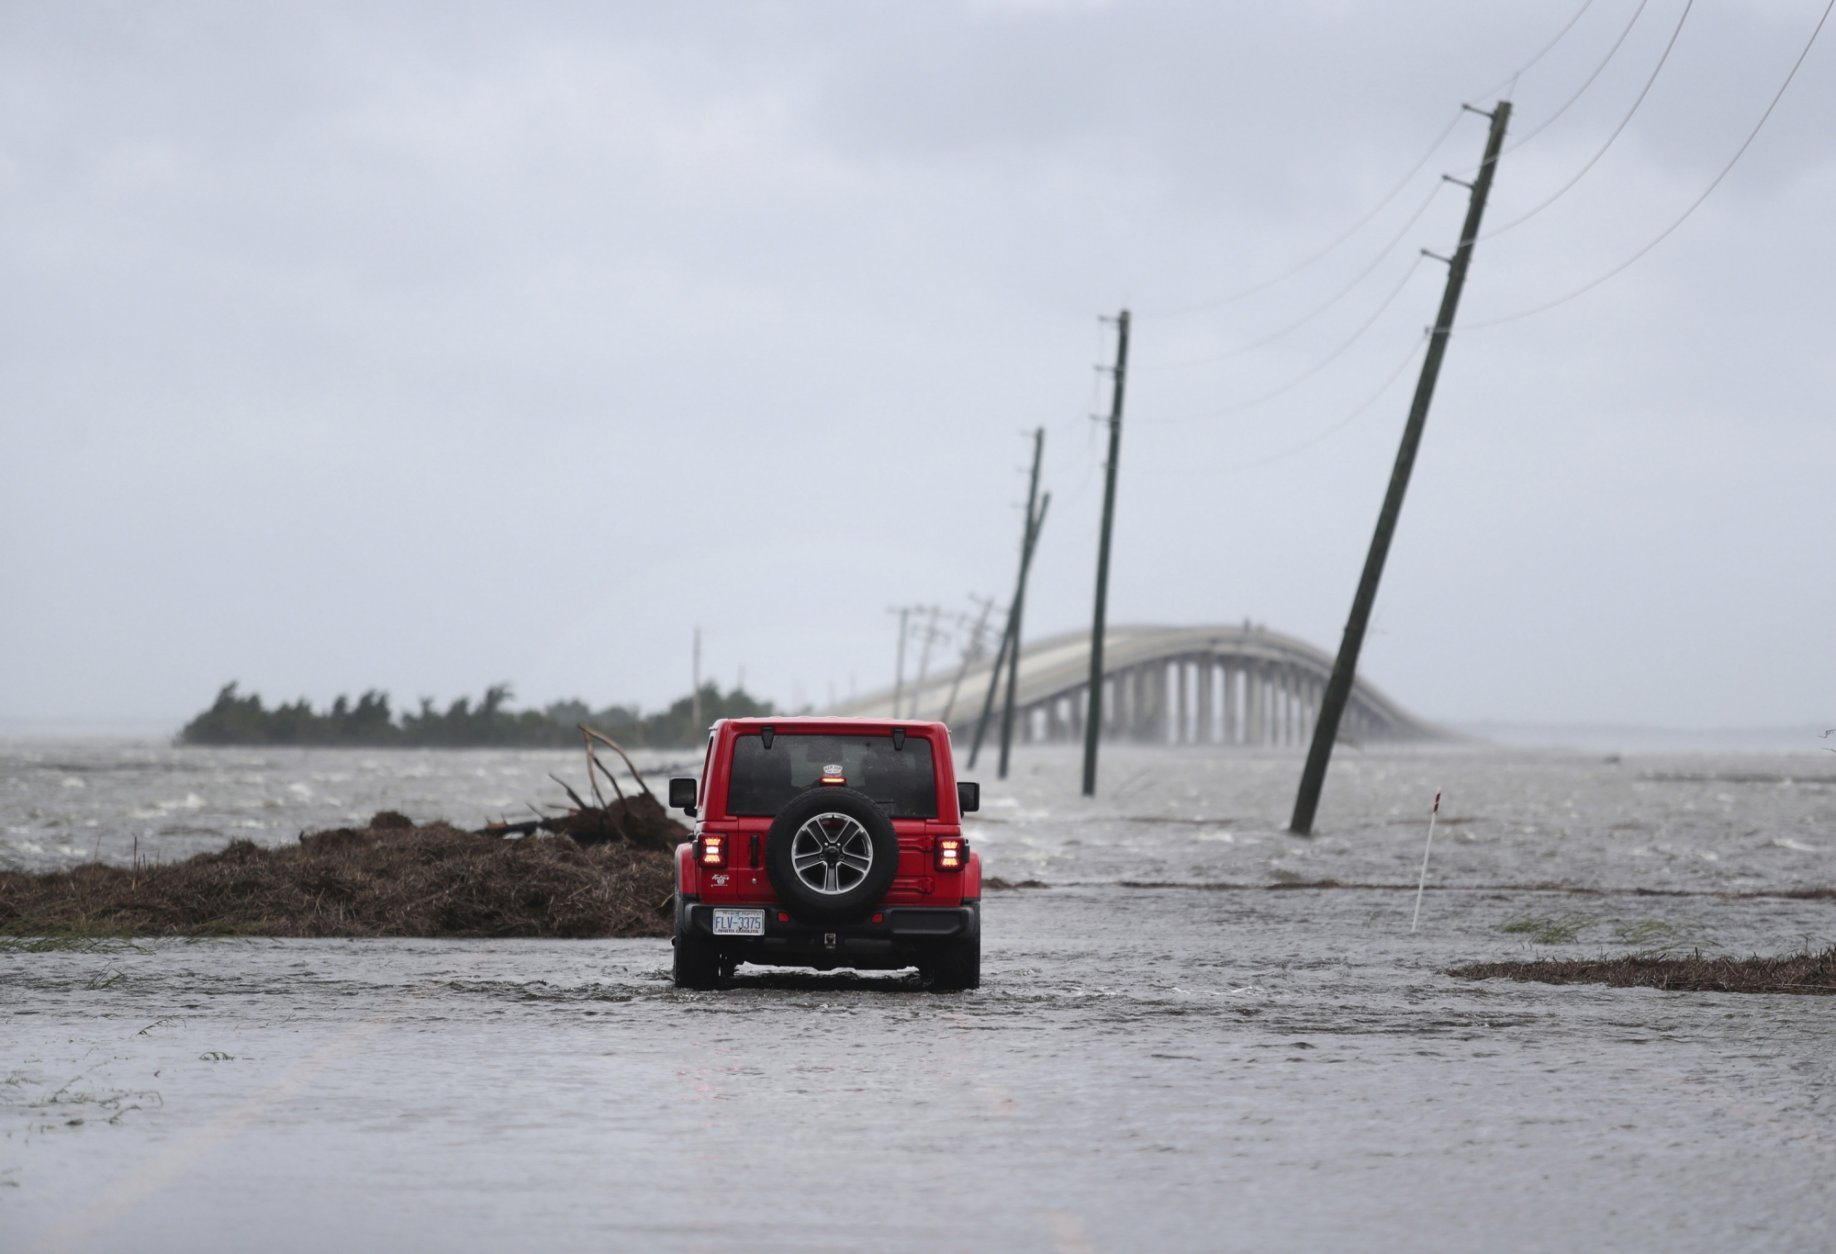 Storm surge from Hurricane Dorian blocks Cedar Island off from the mainland on NC 12 in Atlantic, N.C., after Hurricane Dorian past the coast on Friday, Sept. 6, 2019. (AP Photo/Tom Copeland)